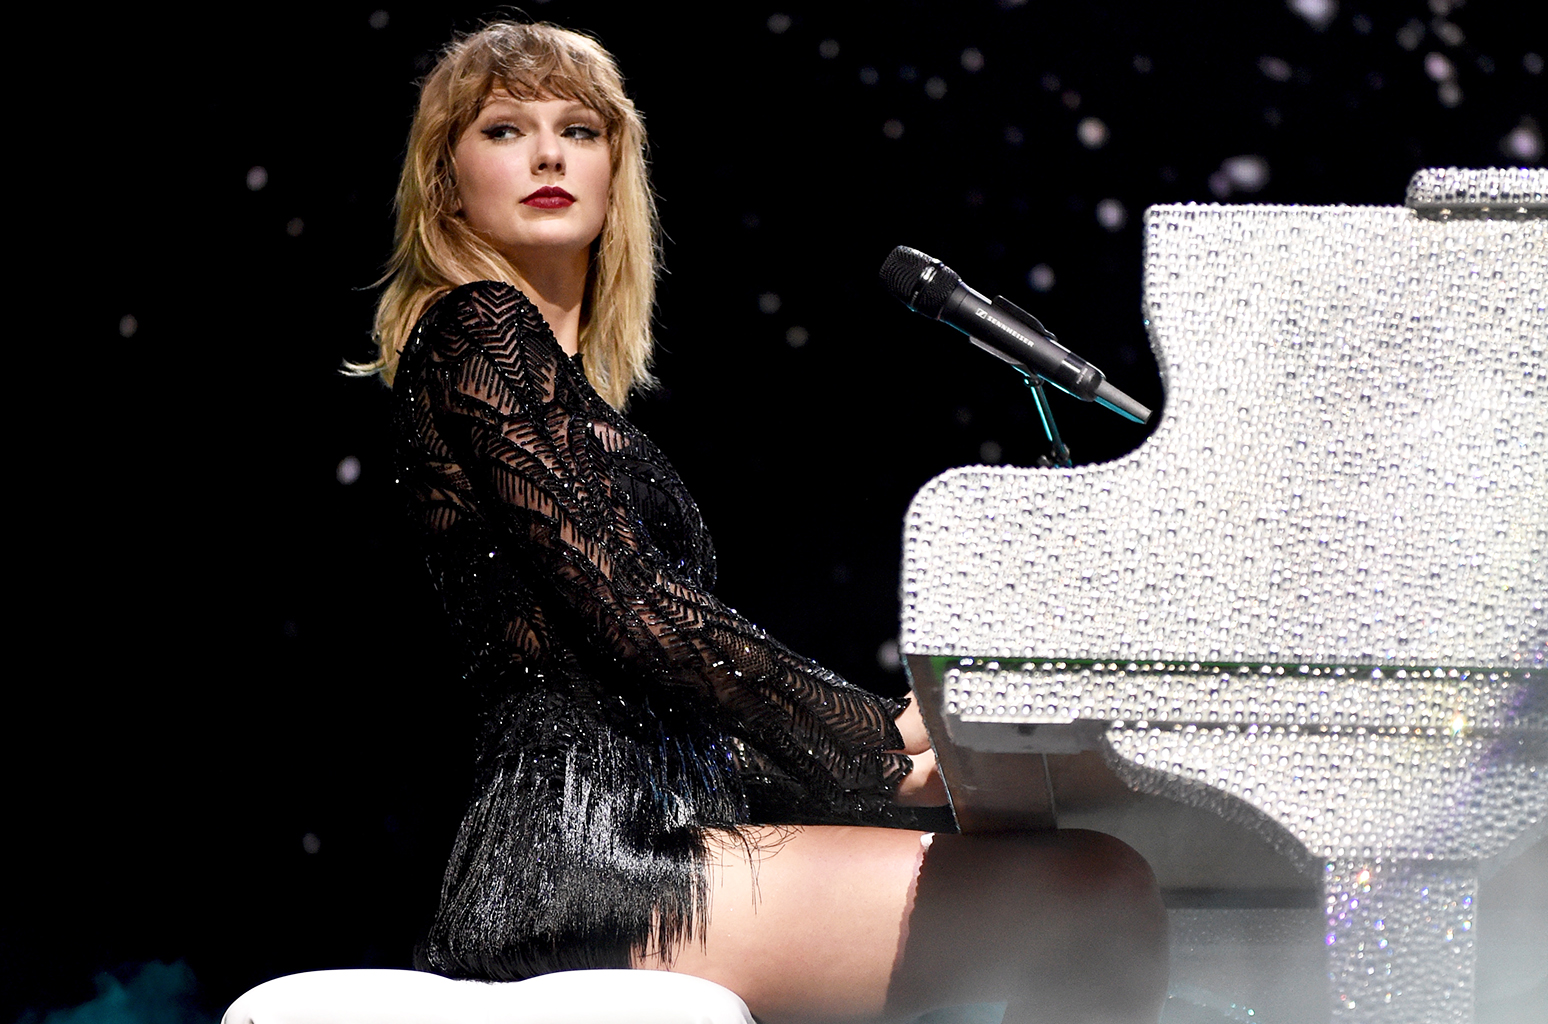 Taylor Swift's 'Reputation' Tour Sales Are Reportedly Sinking